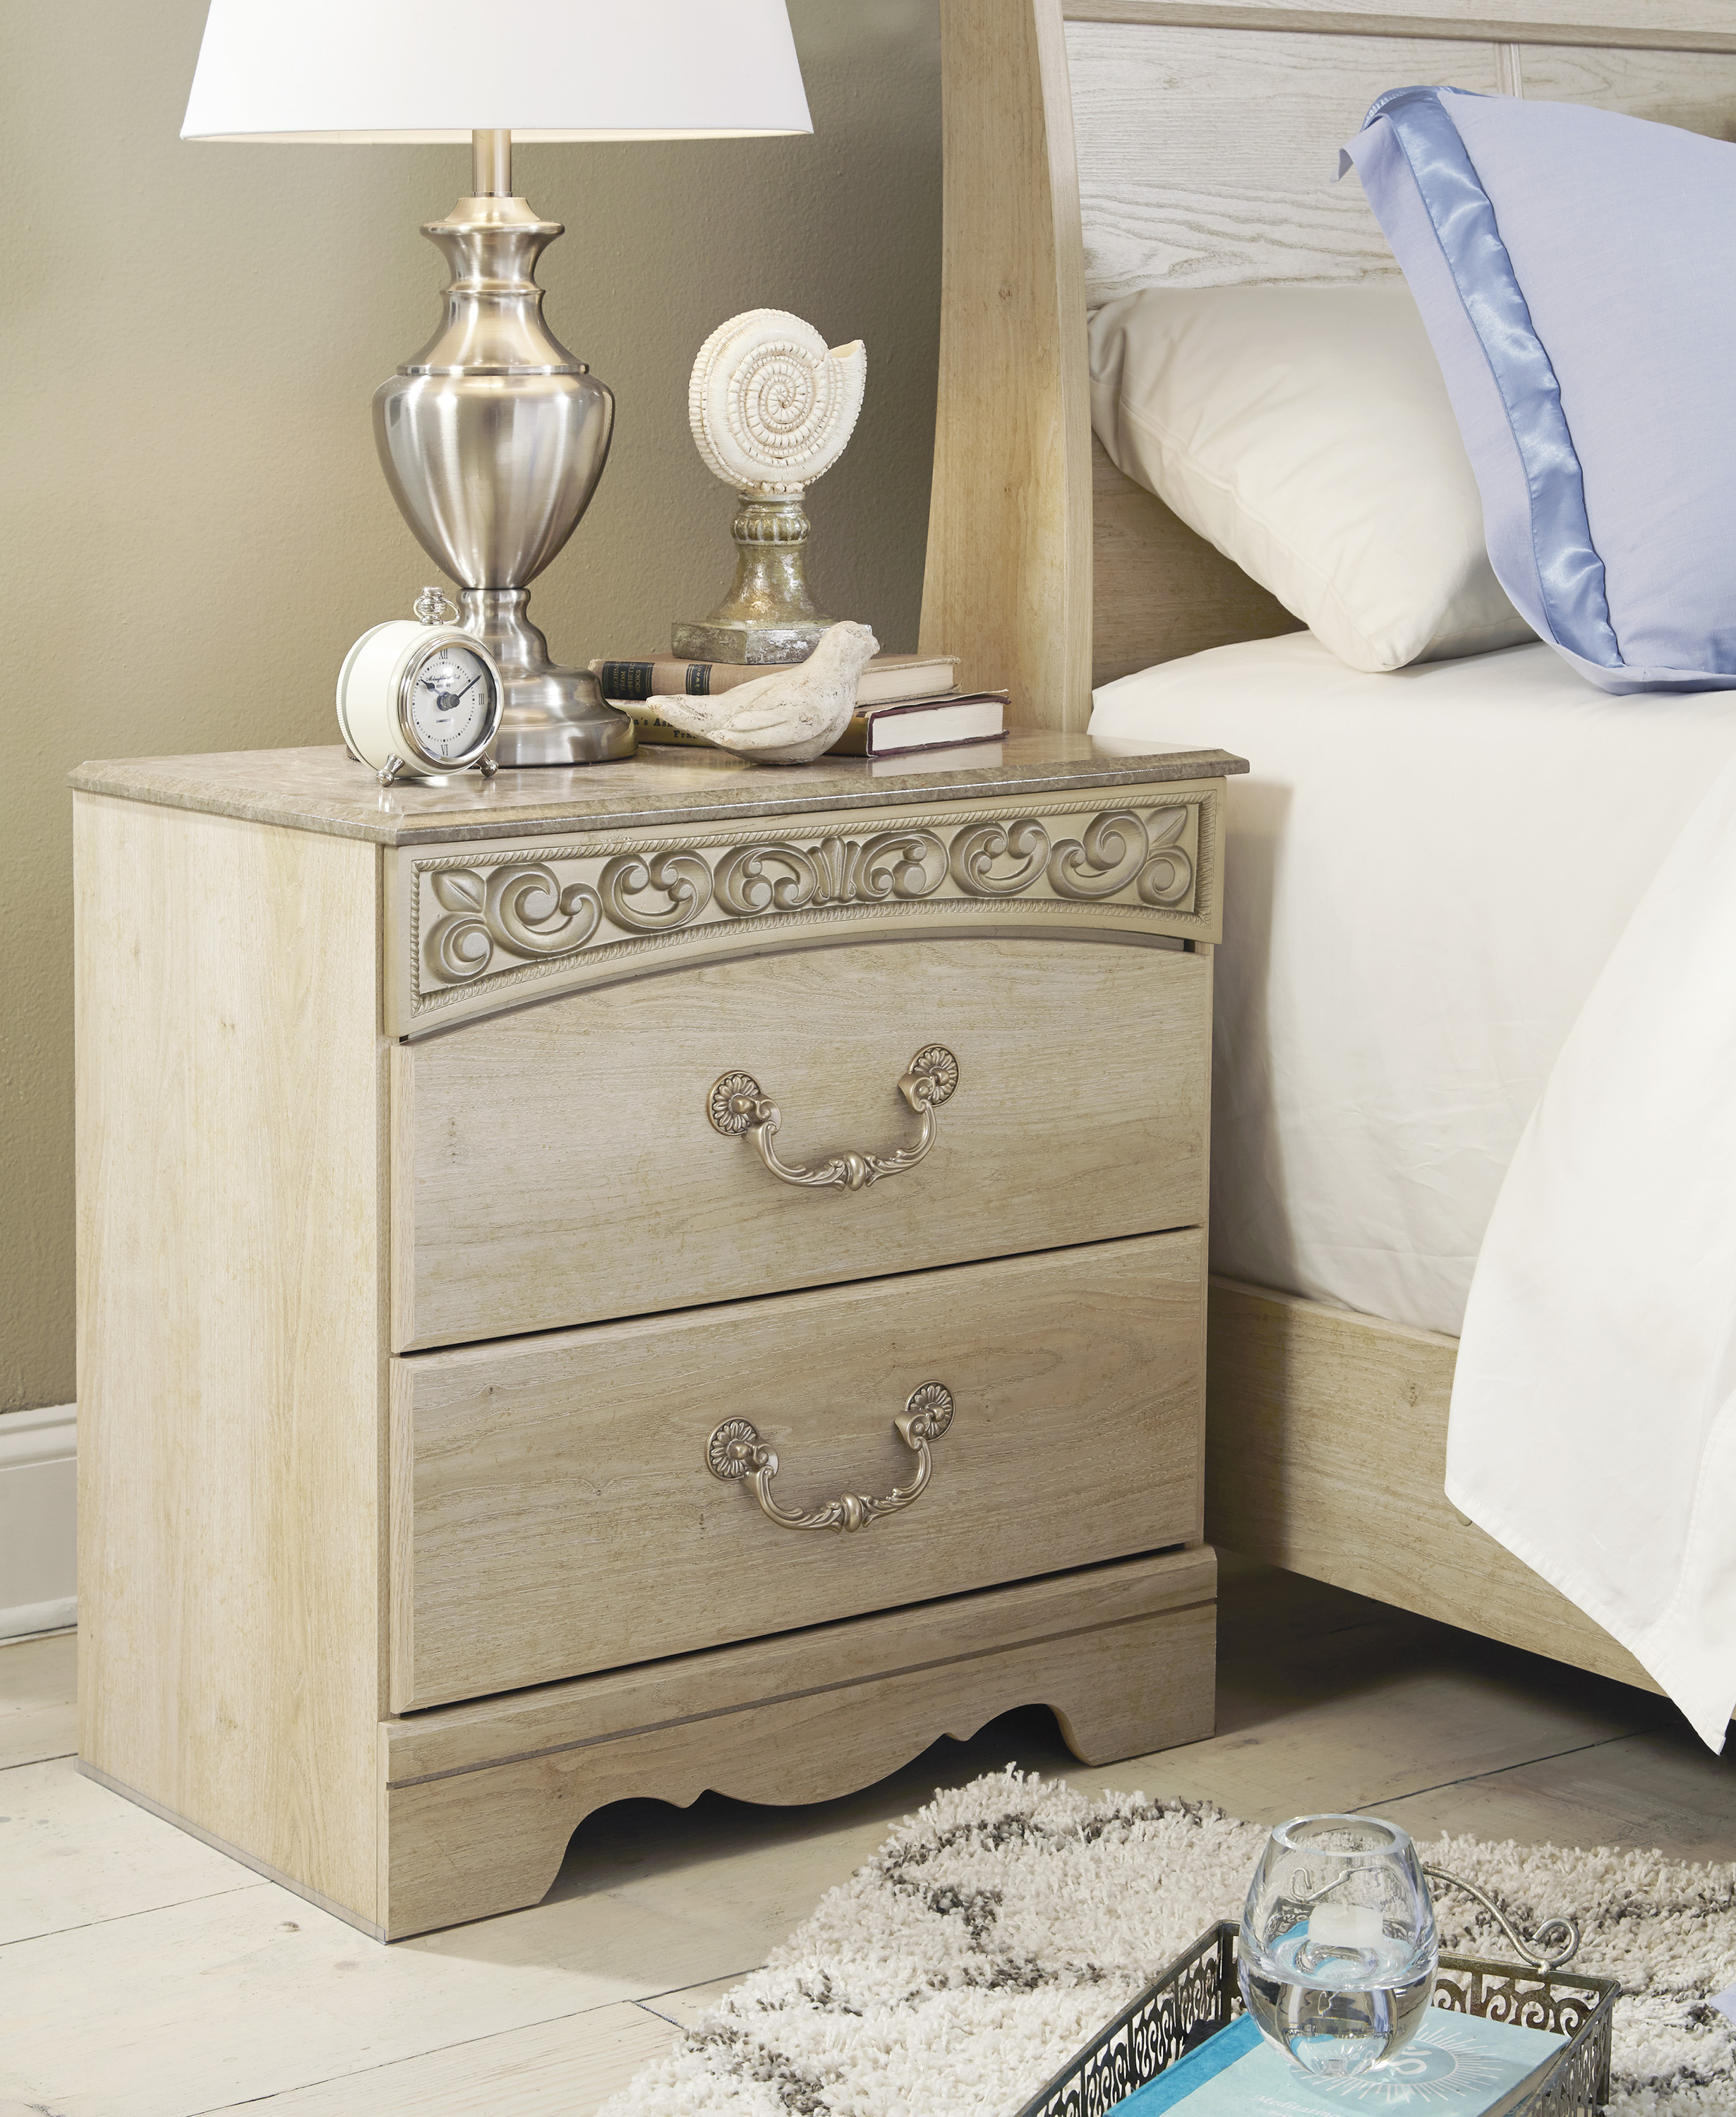 Le Grand 6 Drawer Dresser In Antique White: Catalina Antique White 3 Piece Bedroom Set